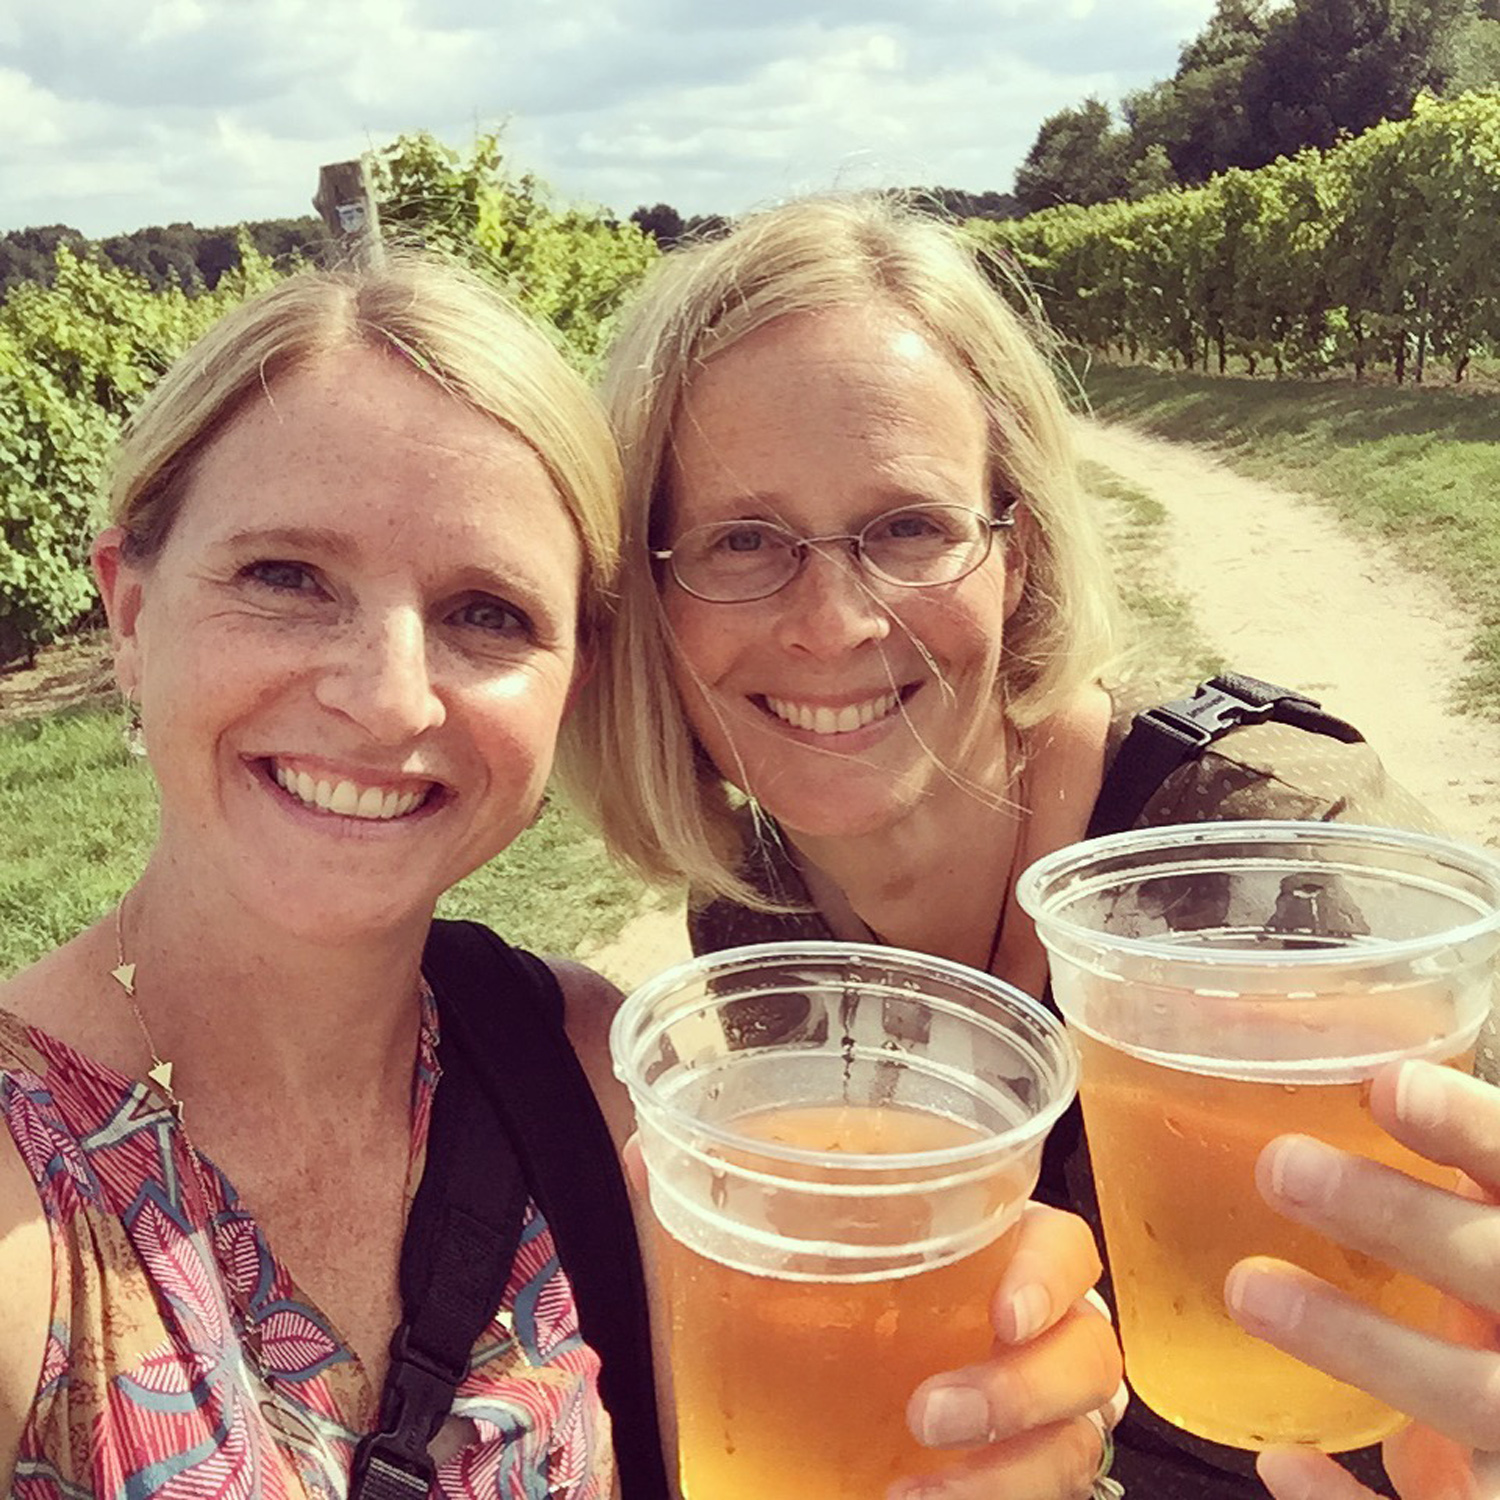 being offered cider while shooting a vineyard wedding - what a perk!